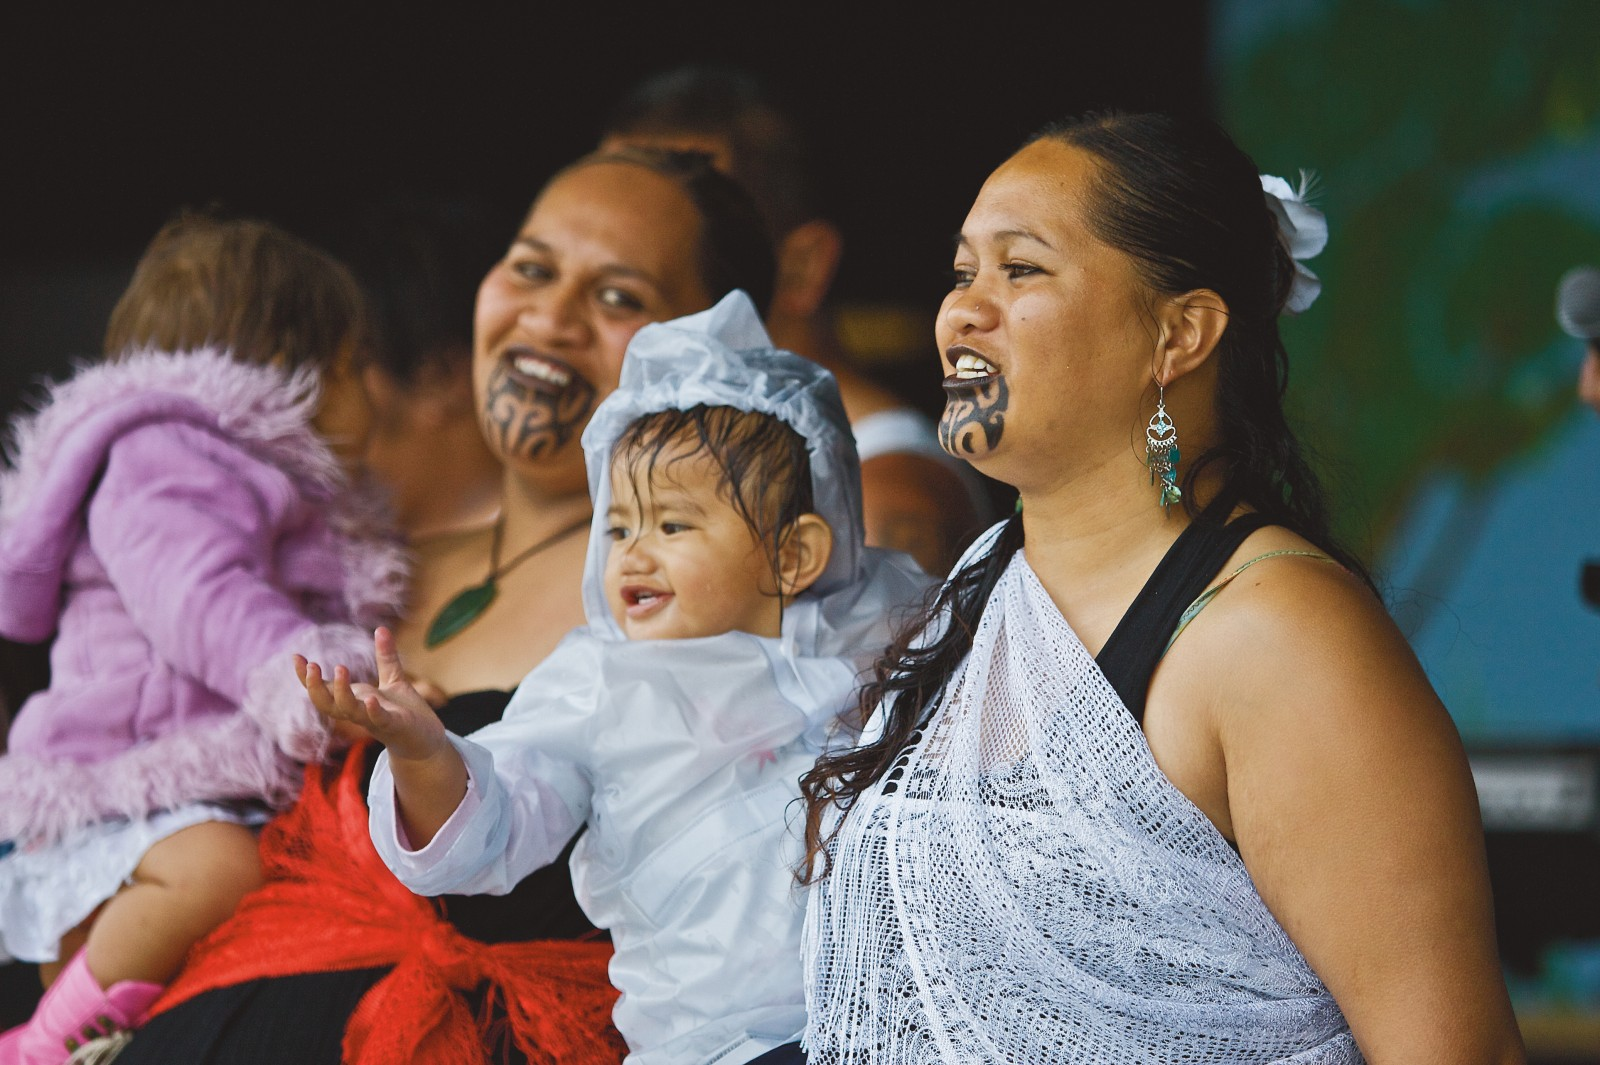 Toddlers join their mothers on stage during a concert, an event that carries on well into the night.